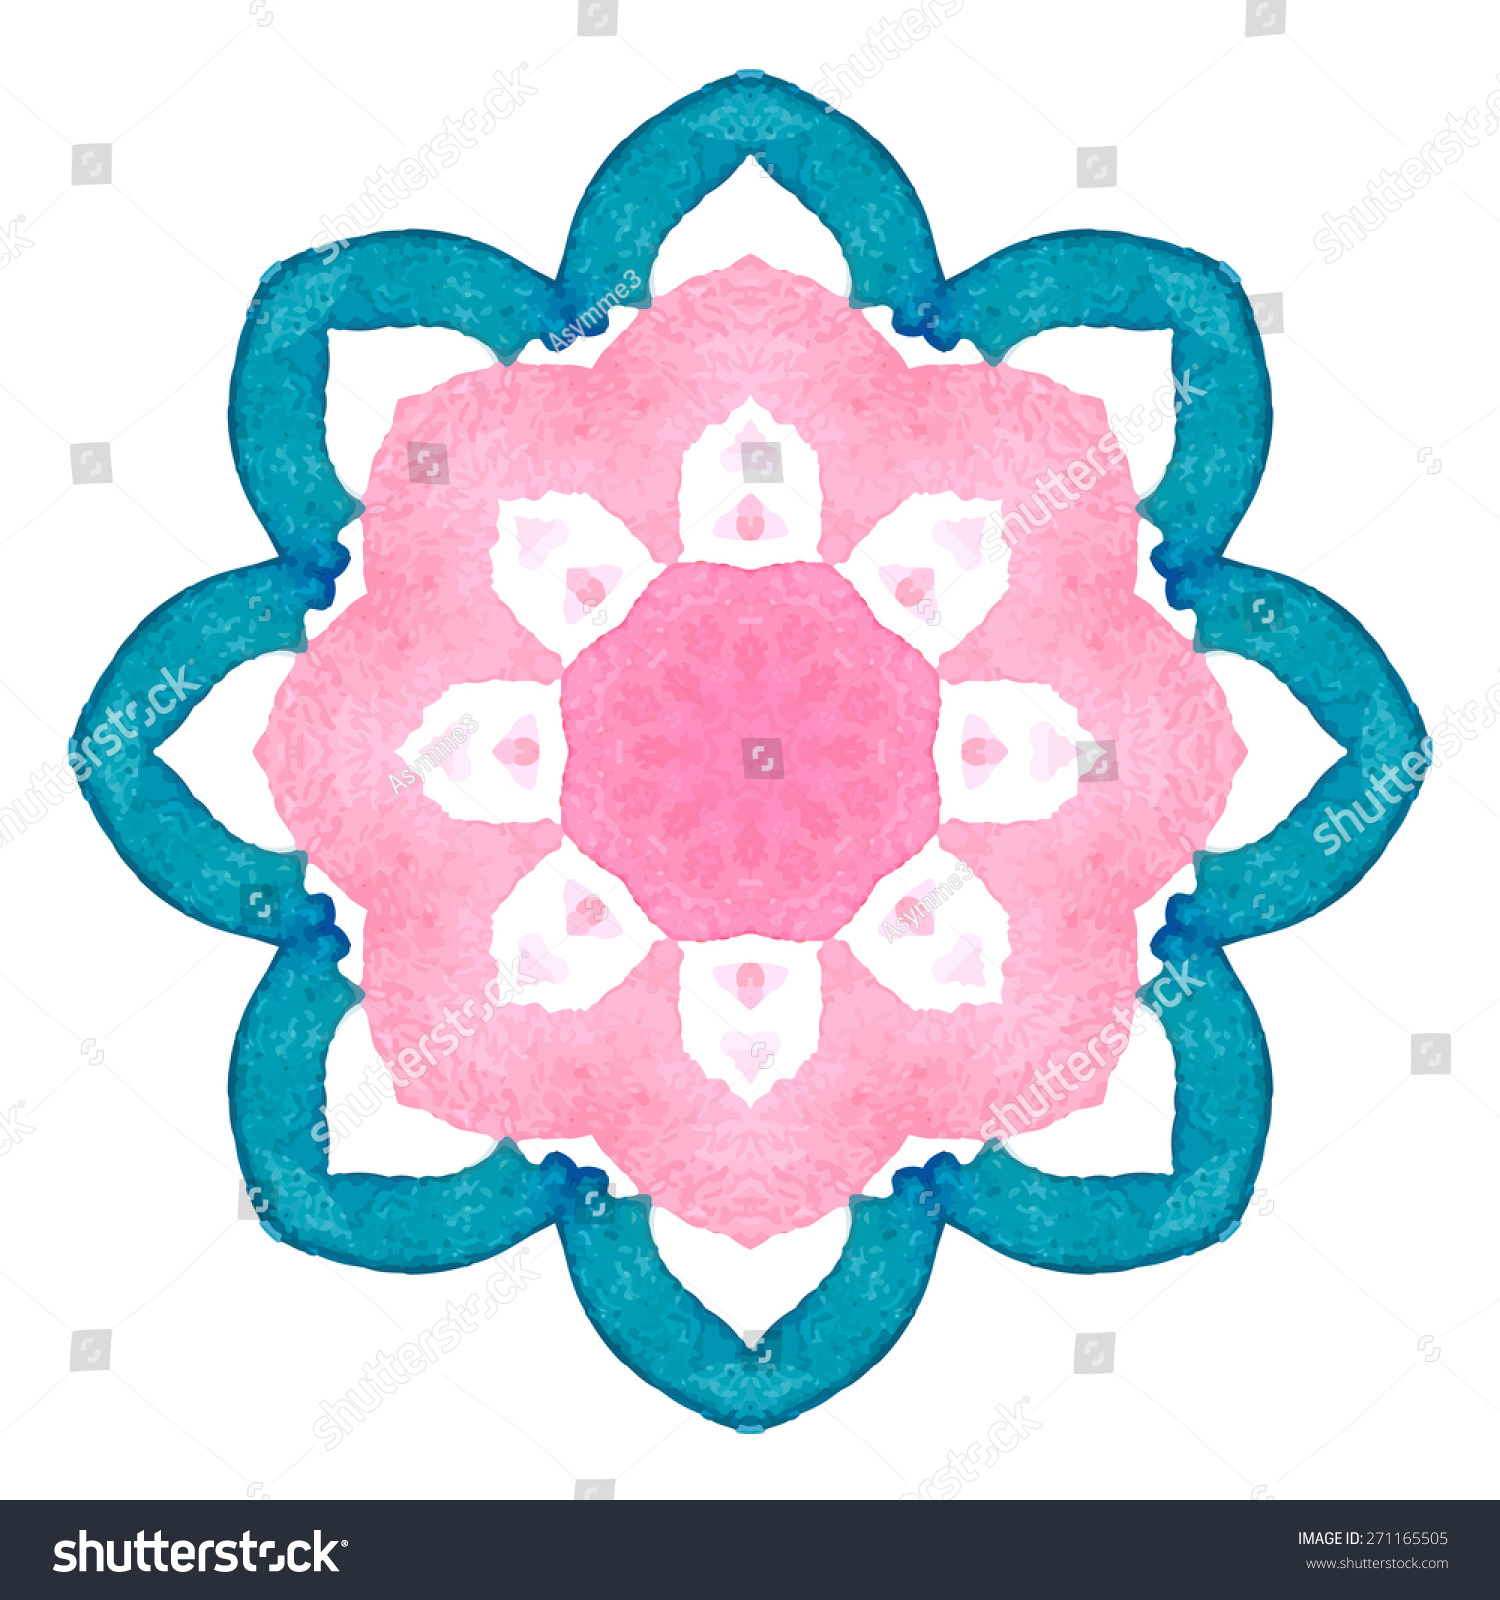 Watercolor Flower Cherry Blossom Mandala Lace circular ornament on white background Oriental Geometric circle element Vector illustration